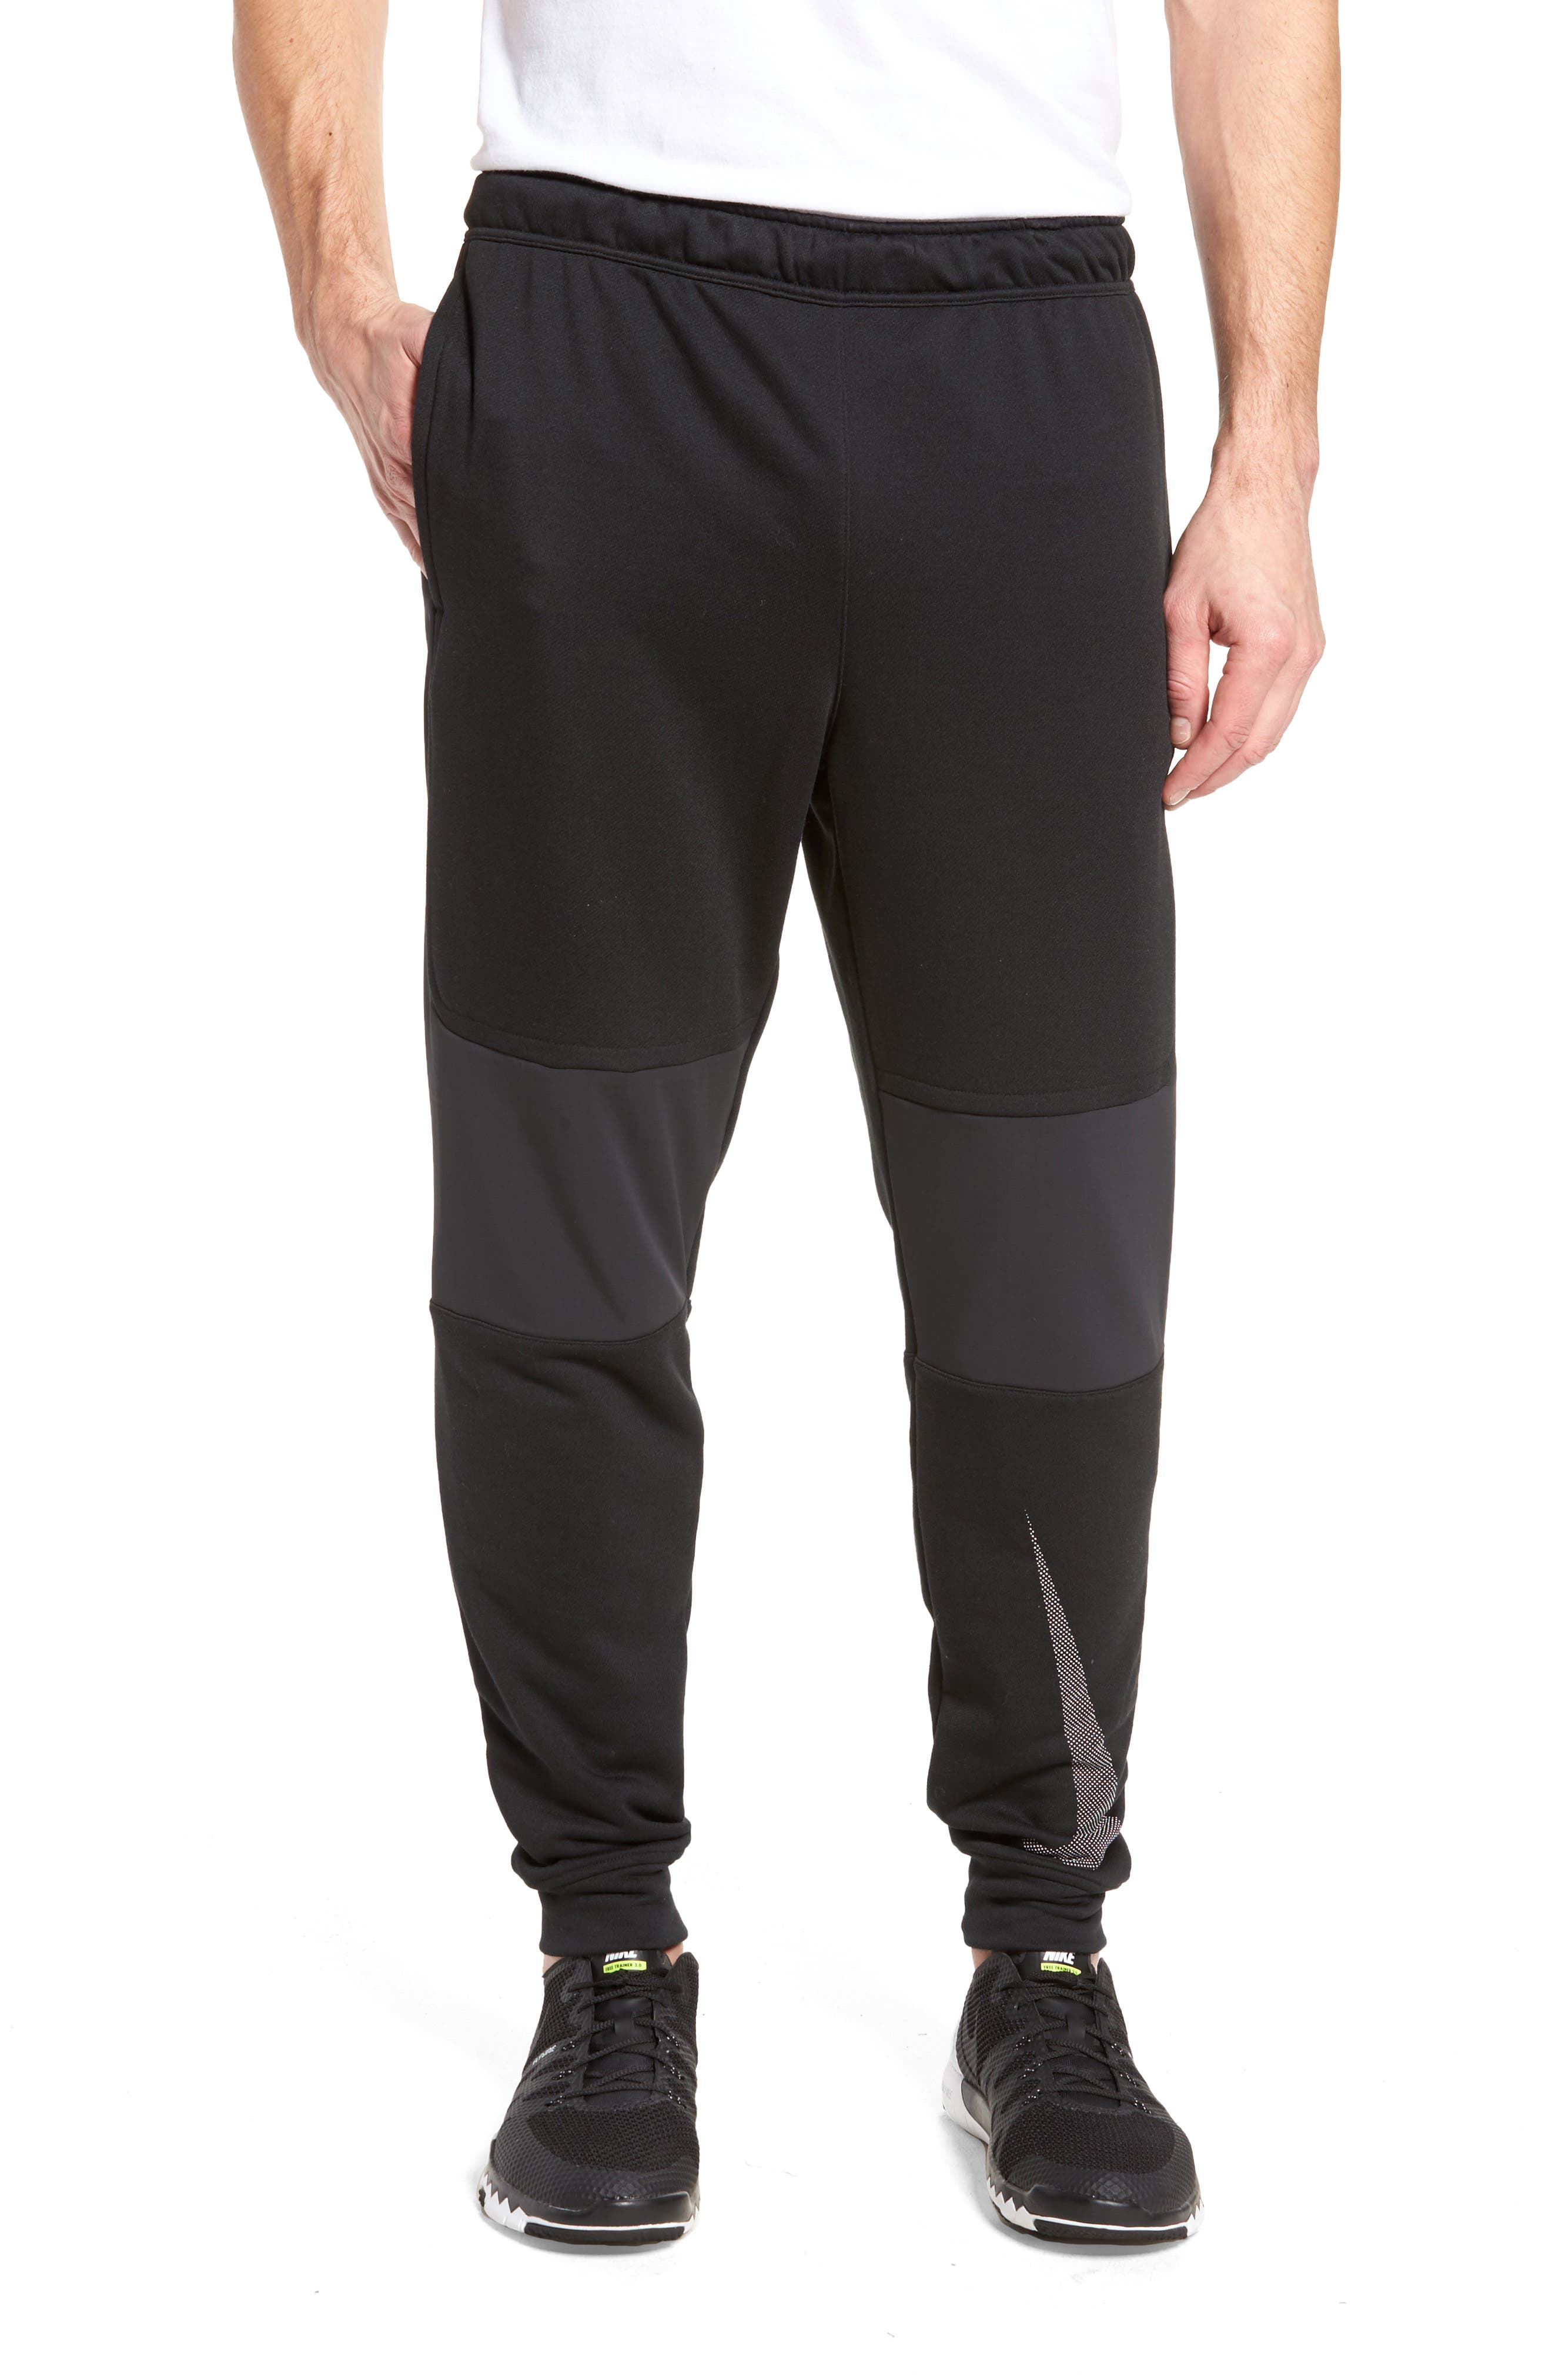 Training Project X Jogger Pants,                         Main,                         color, 010